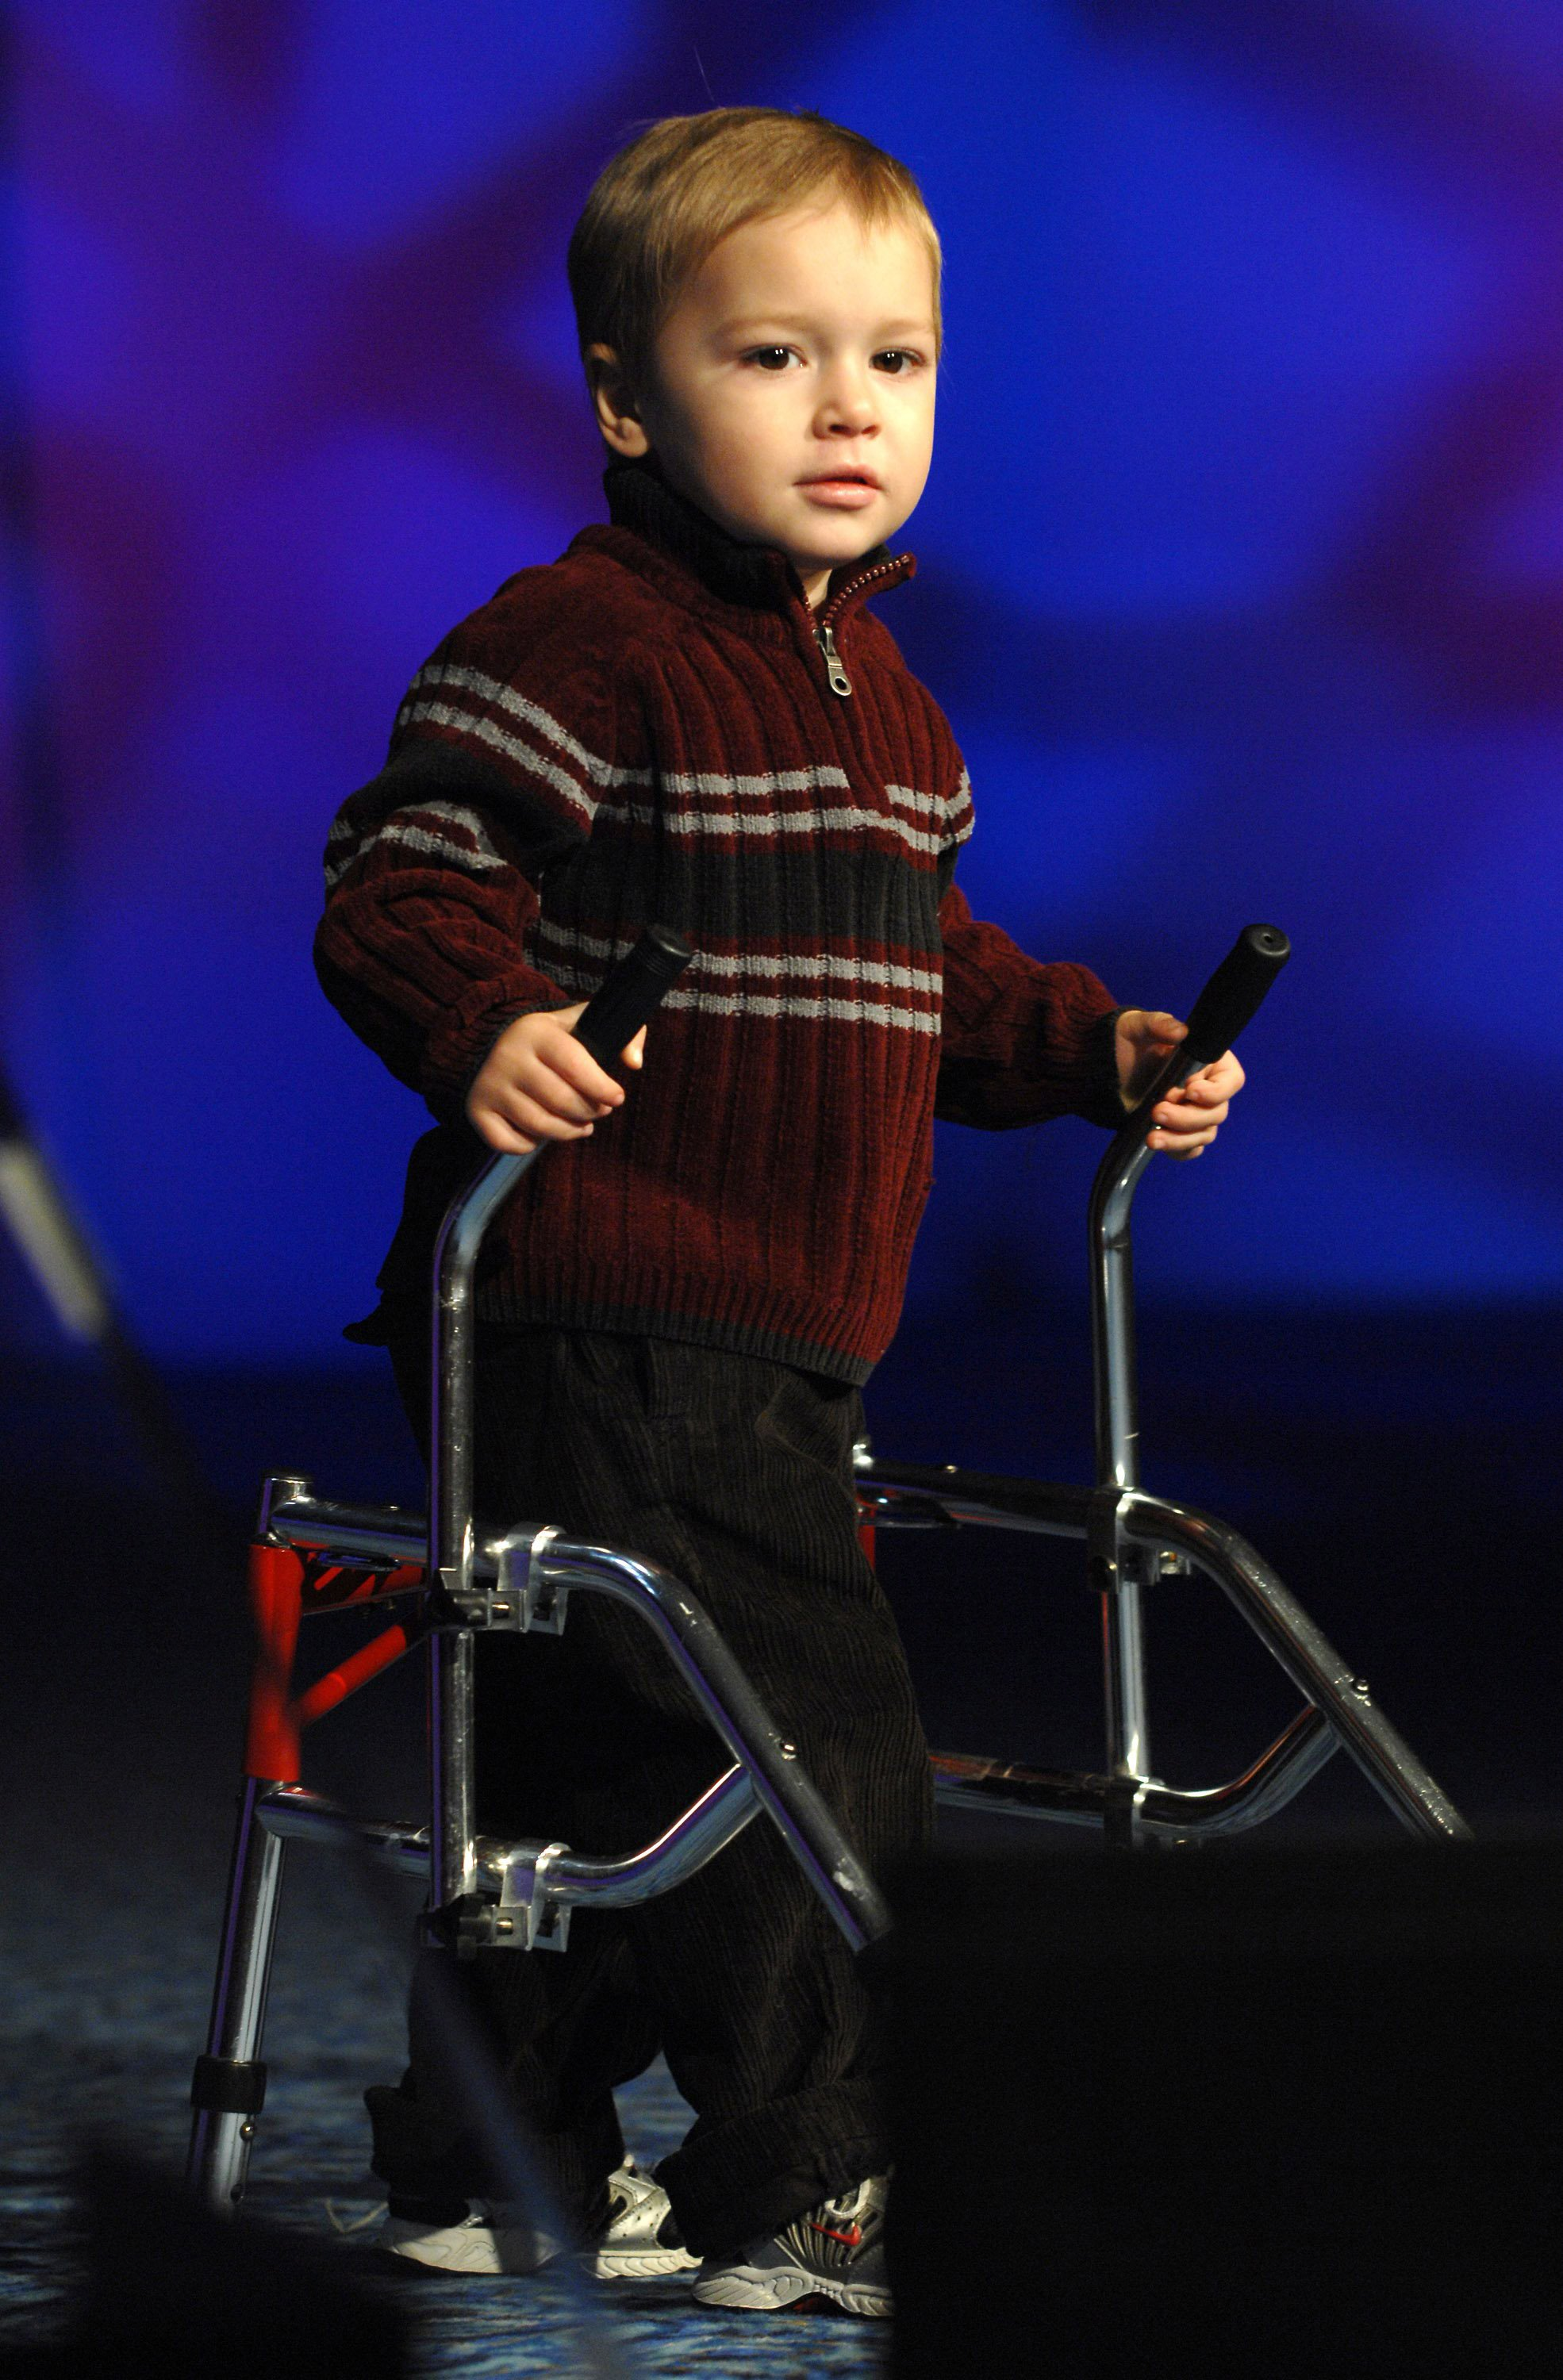 Handicapped child at Christopher Reeve Foundation event in New York , 2014 | Photo: Getty Images